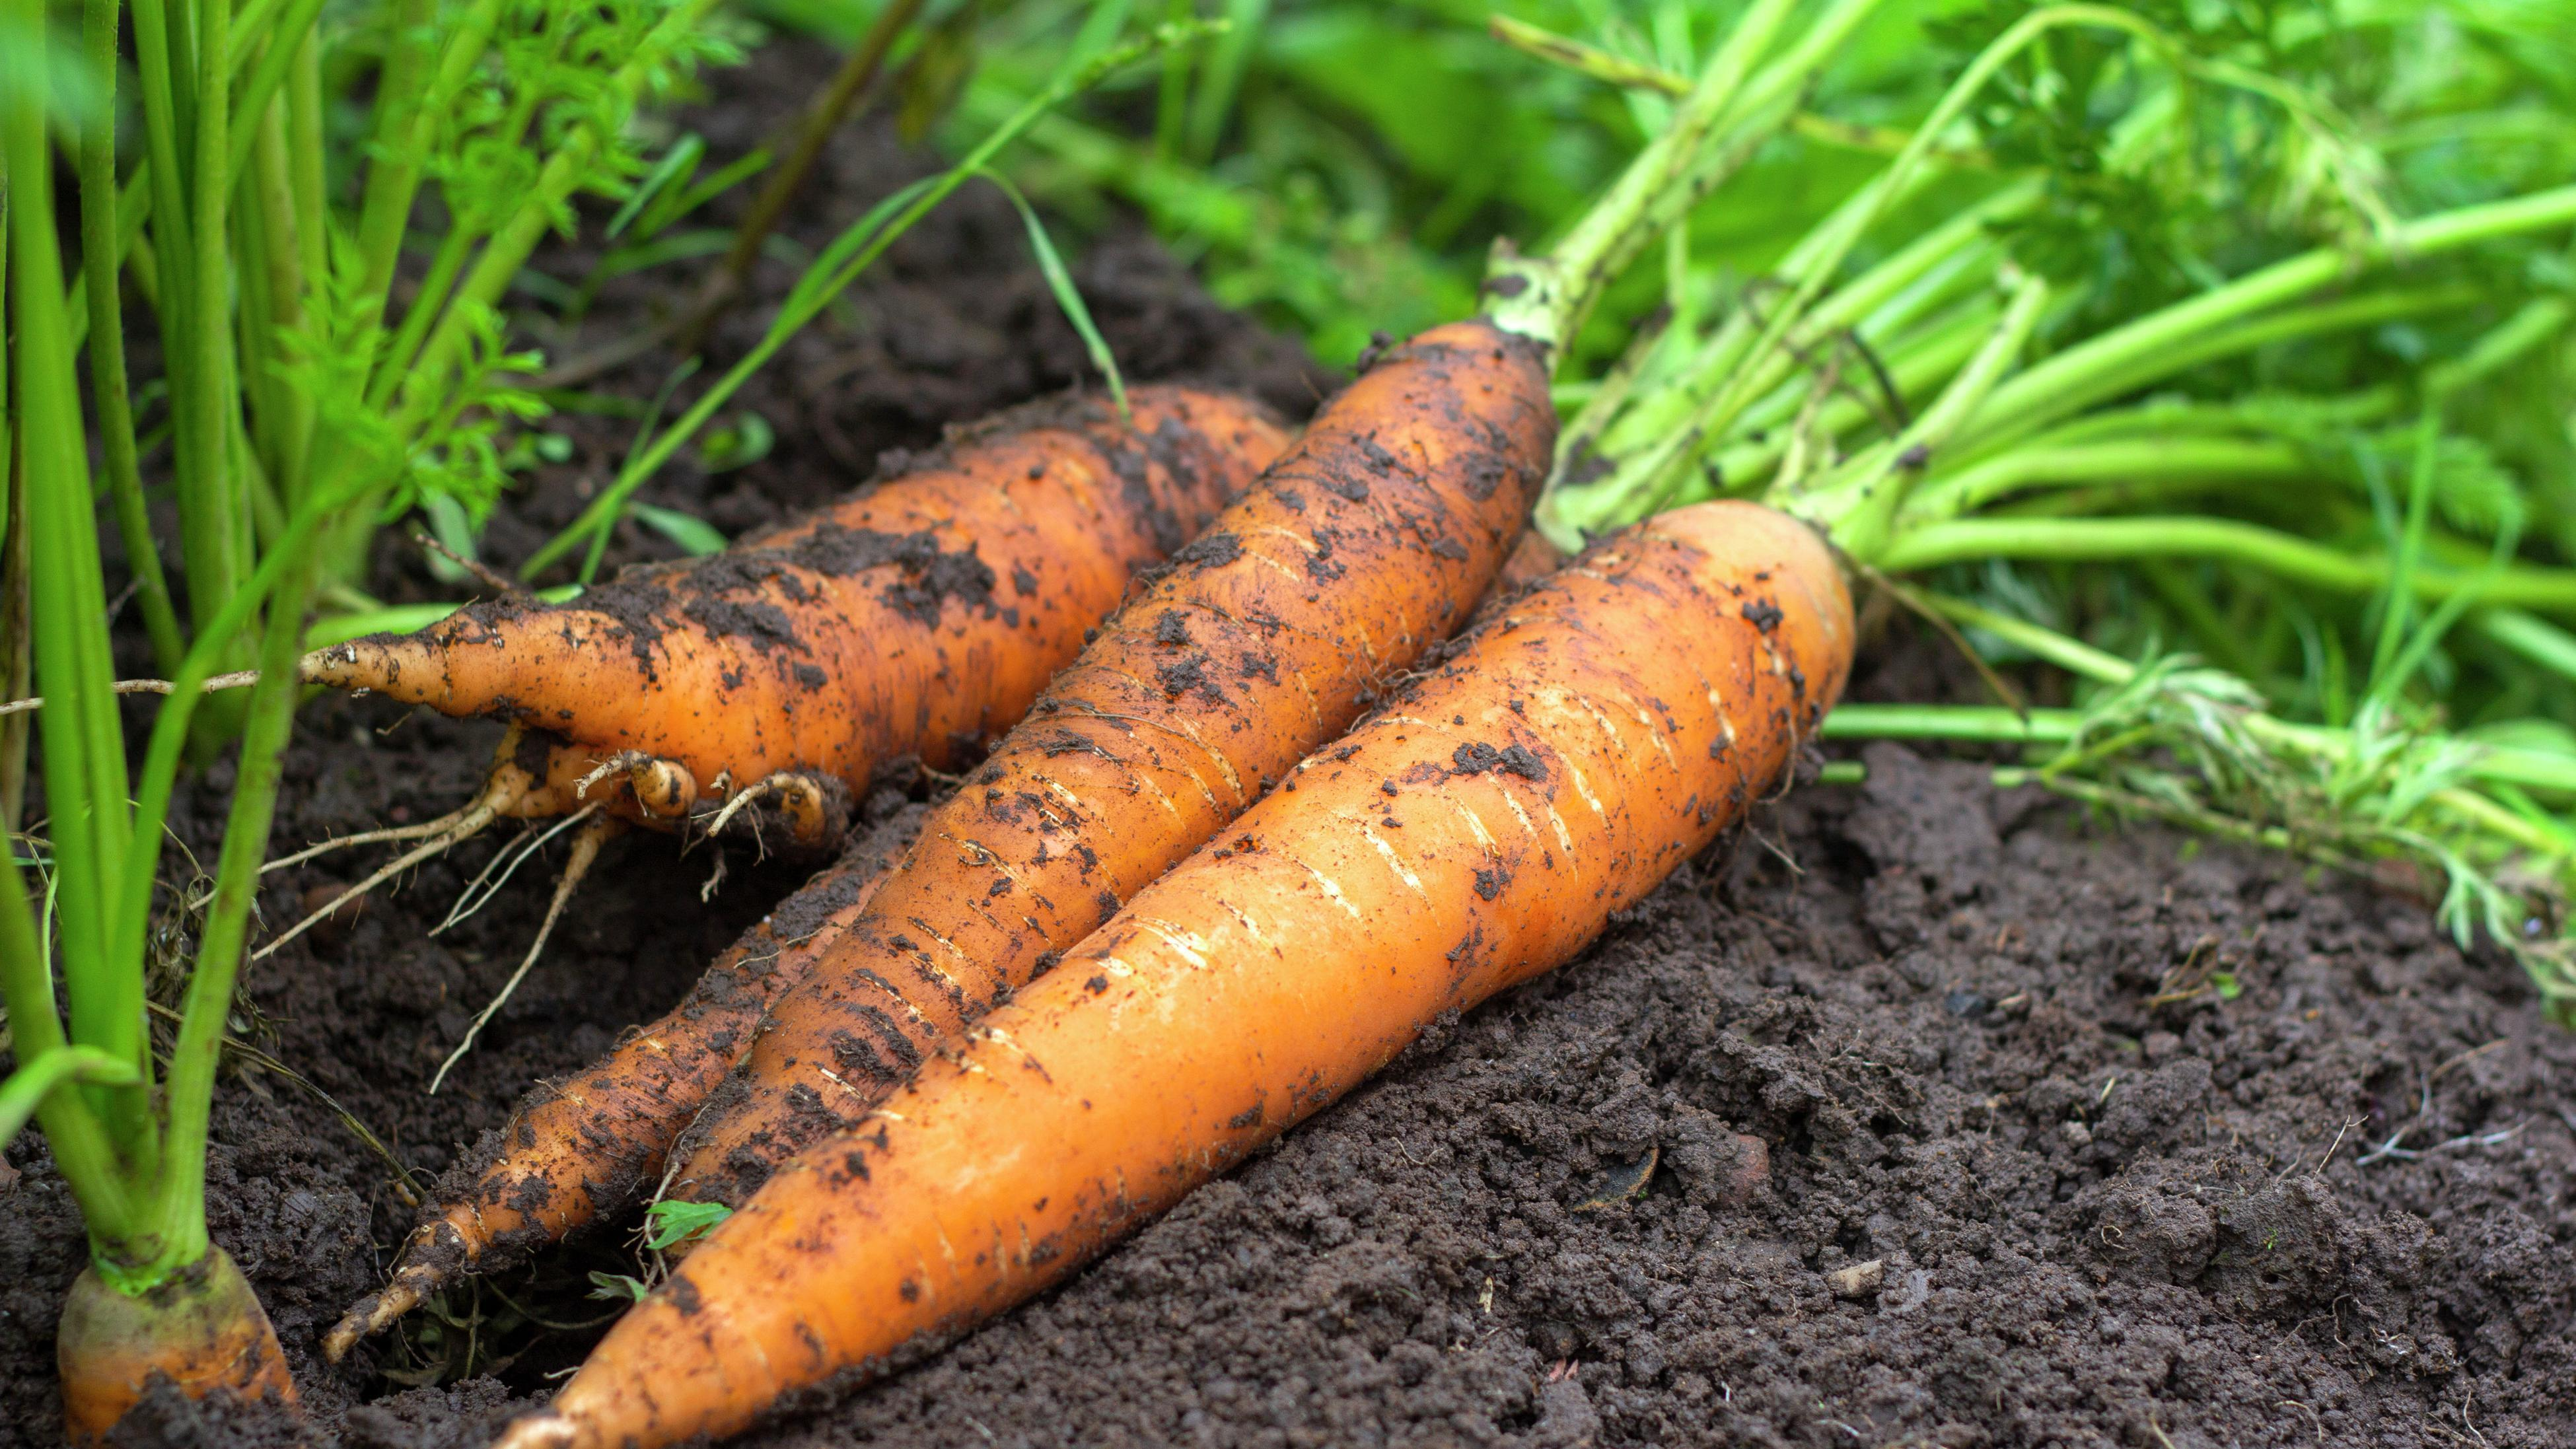 Close up of carrots in soil.